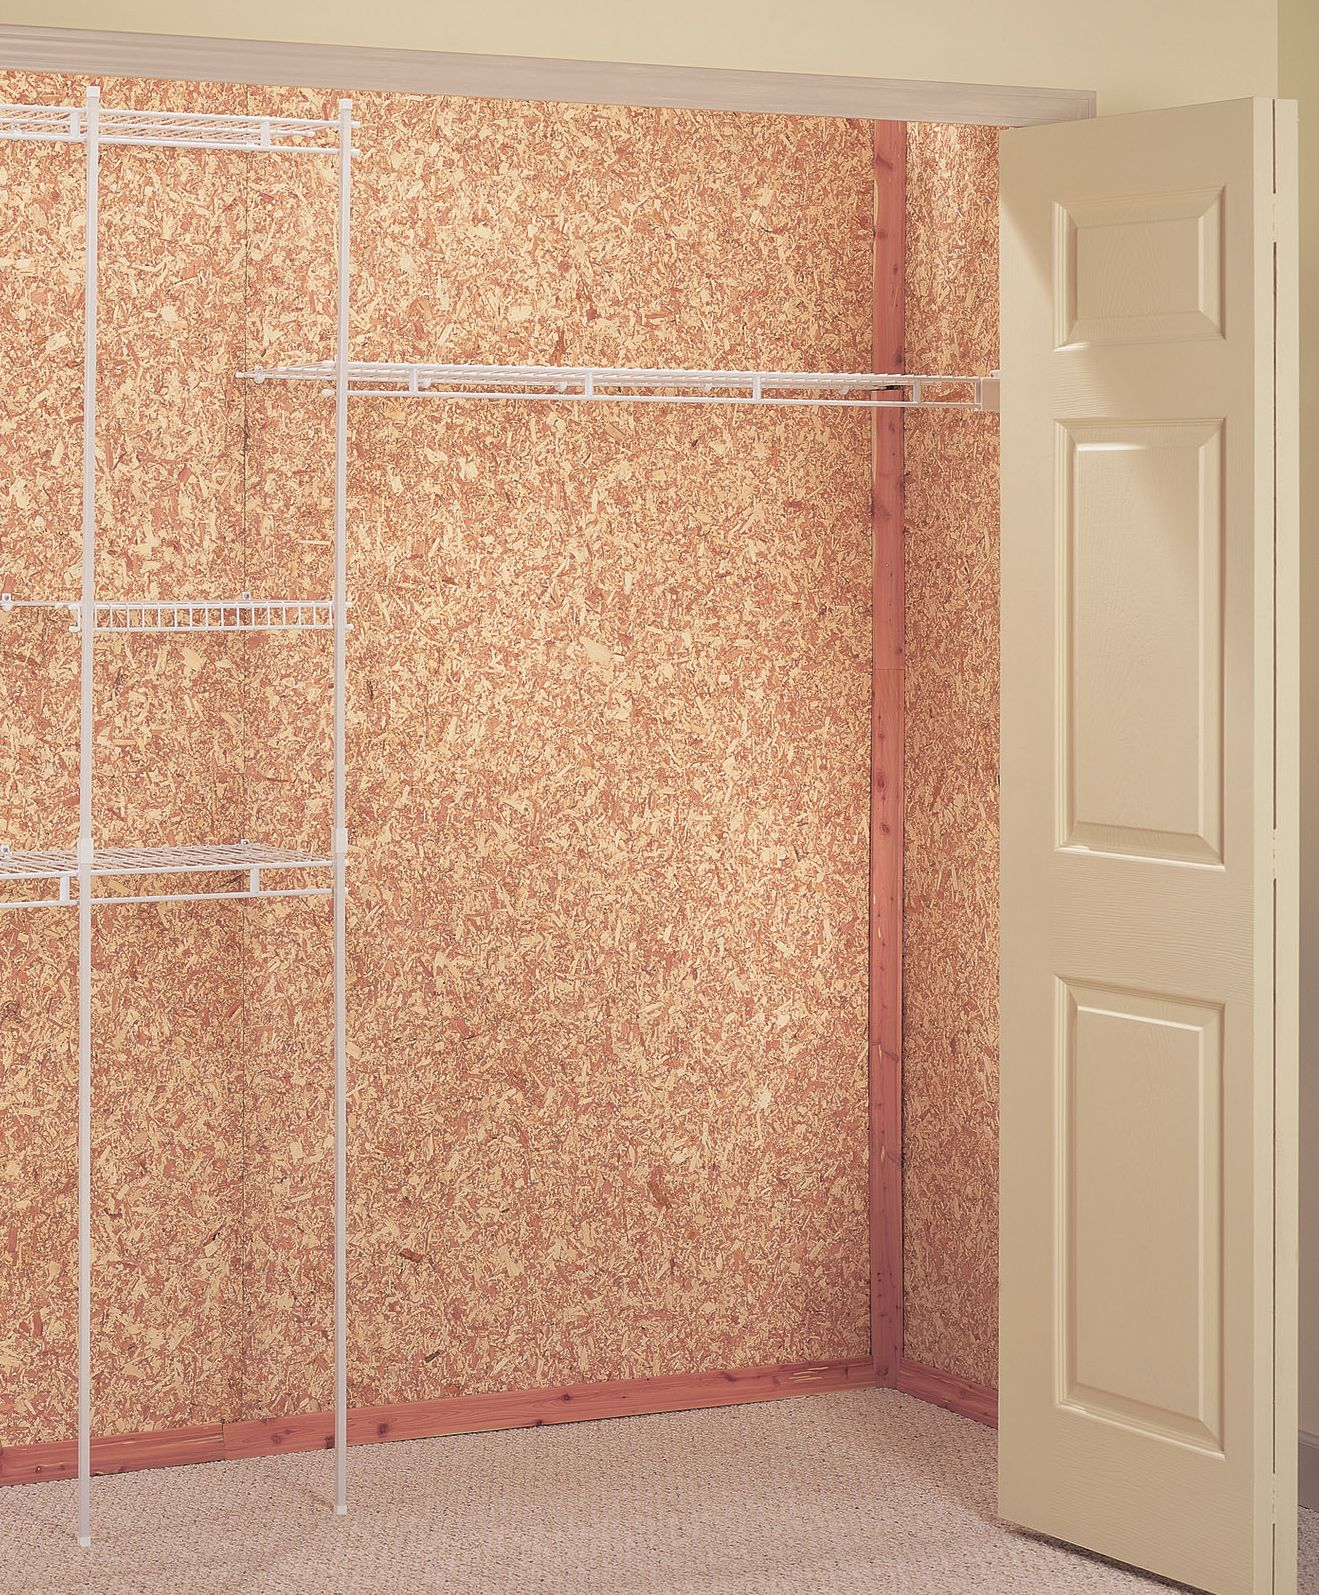 Add The Perfect Accent To Your Home With Cedar Flakeboard Closet Liner  Panel. Enhance Your